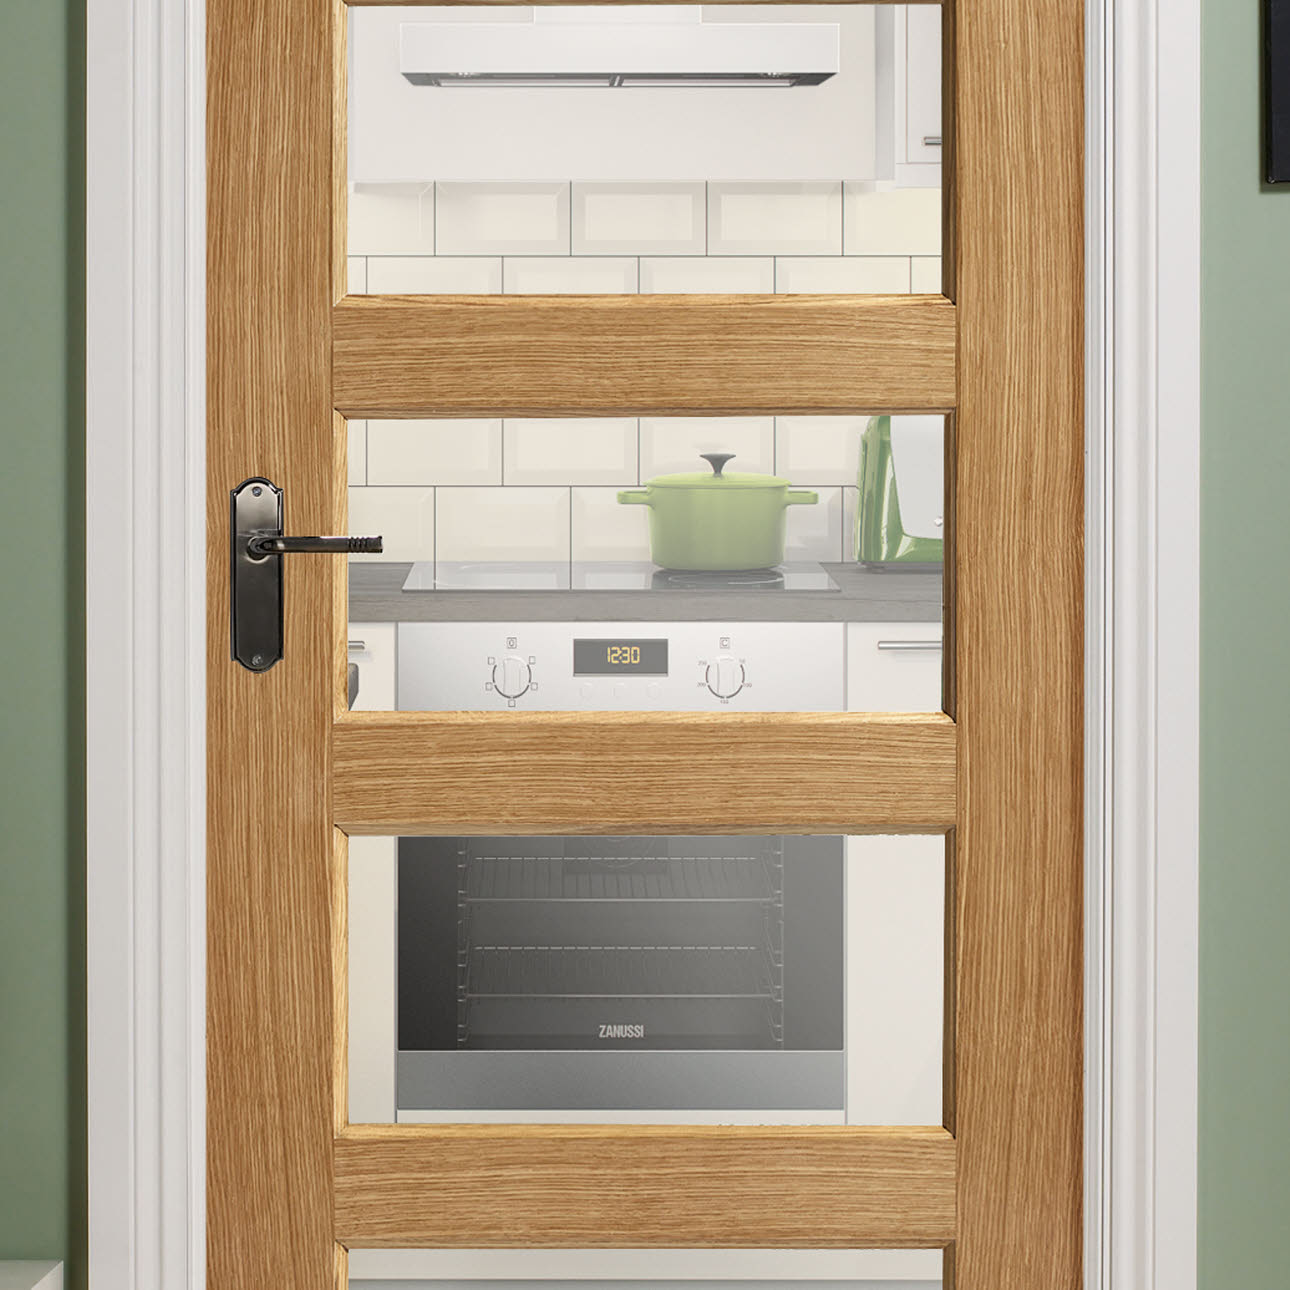 Contemporary oak 5 panel pre-glazed internal door